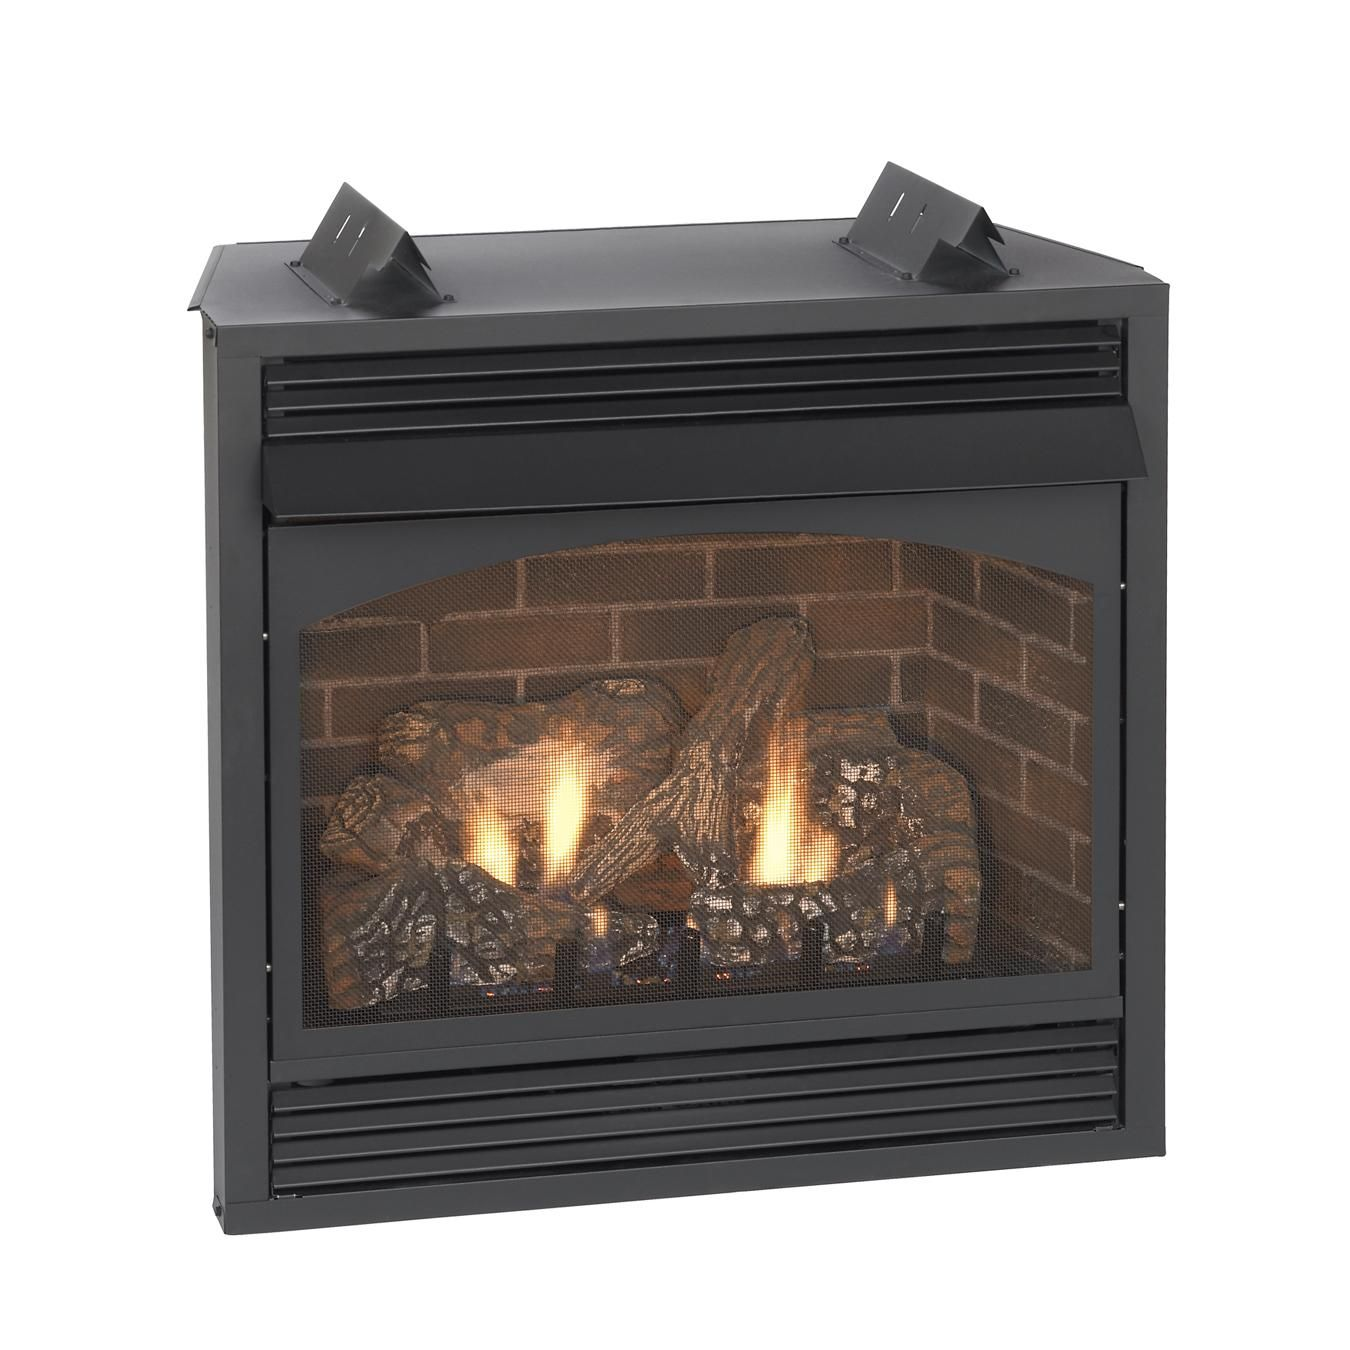 Empire Vail Premium Vent Free Propane Fireplace With Remote Ready